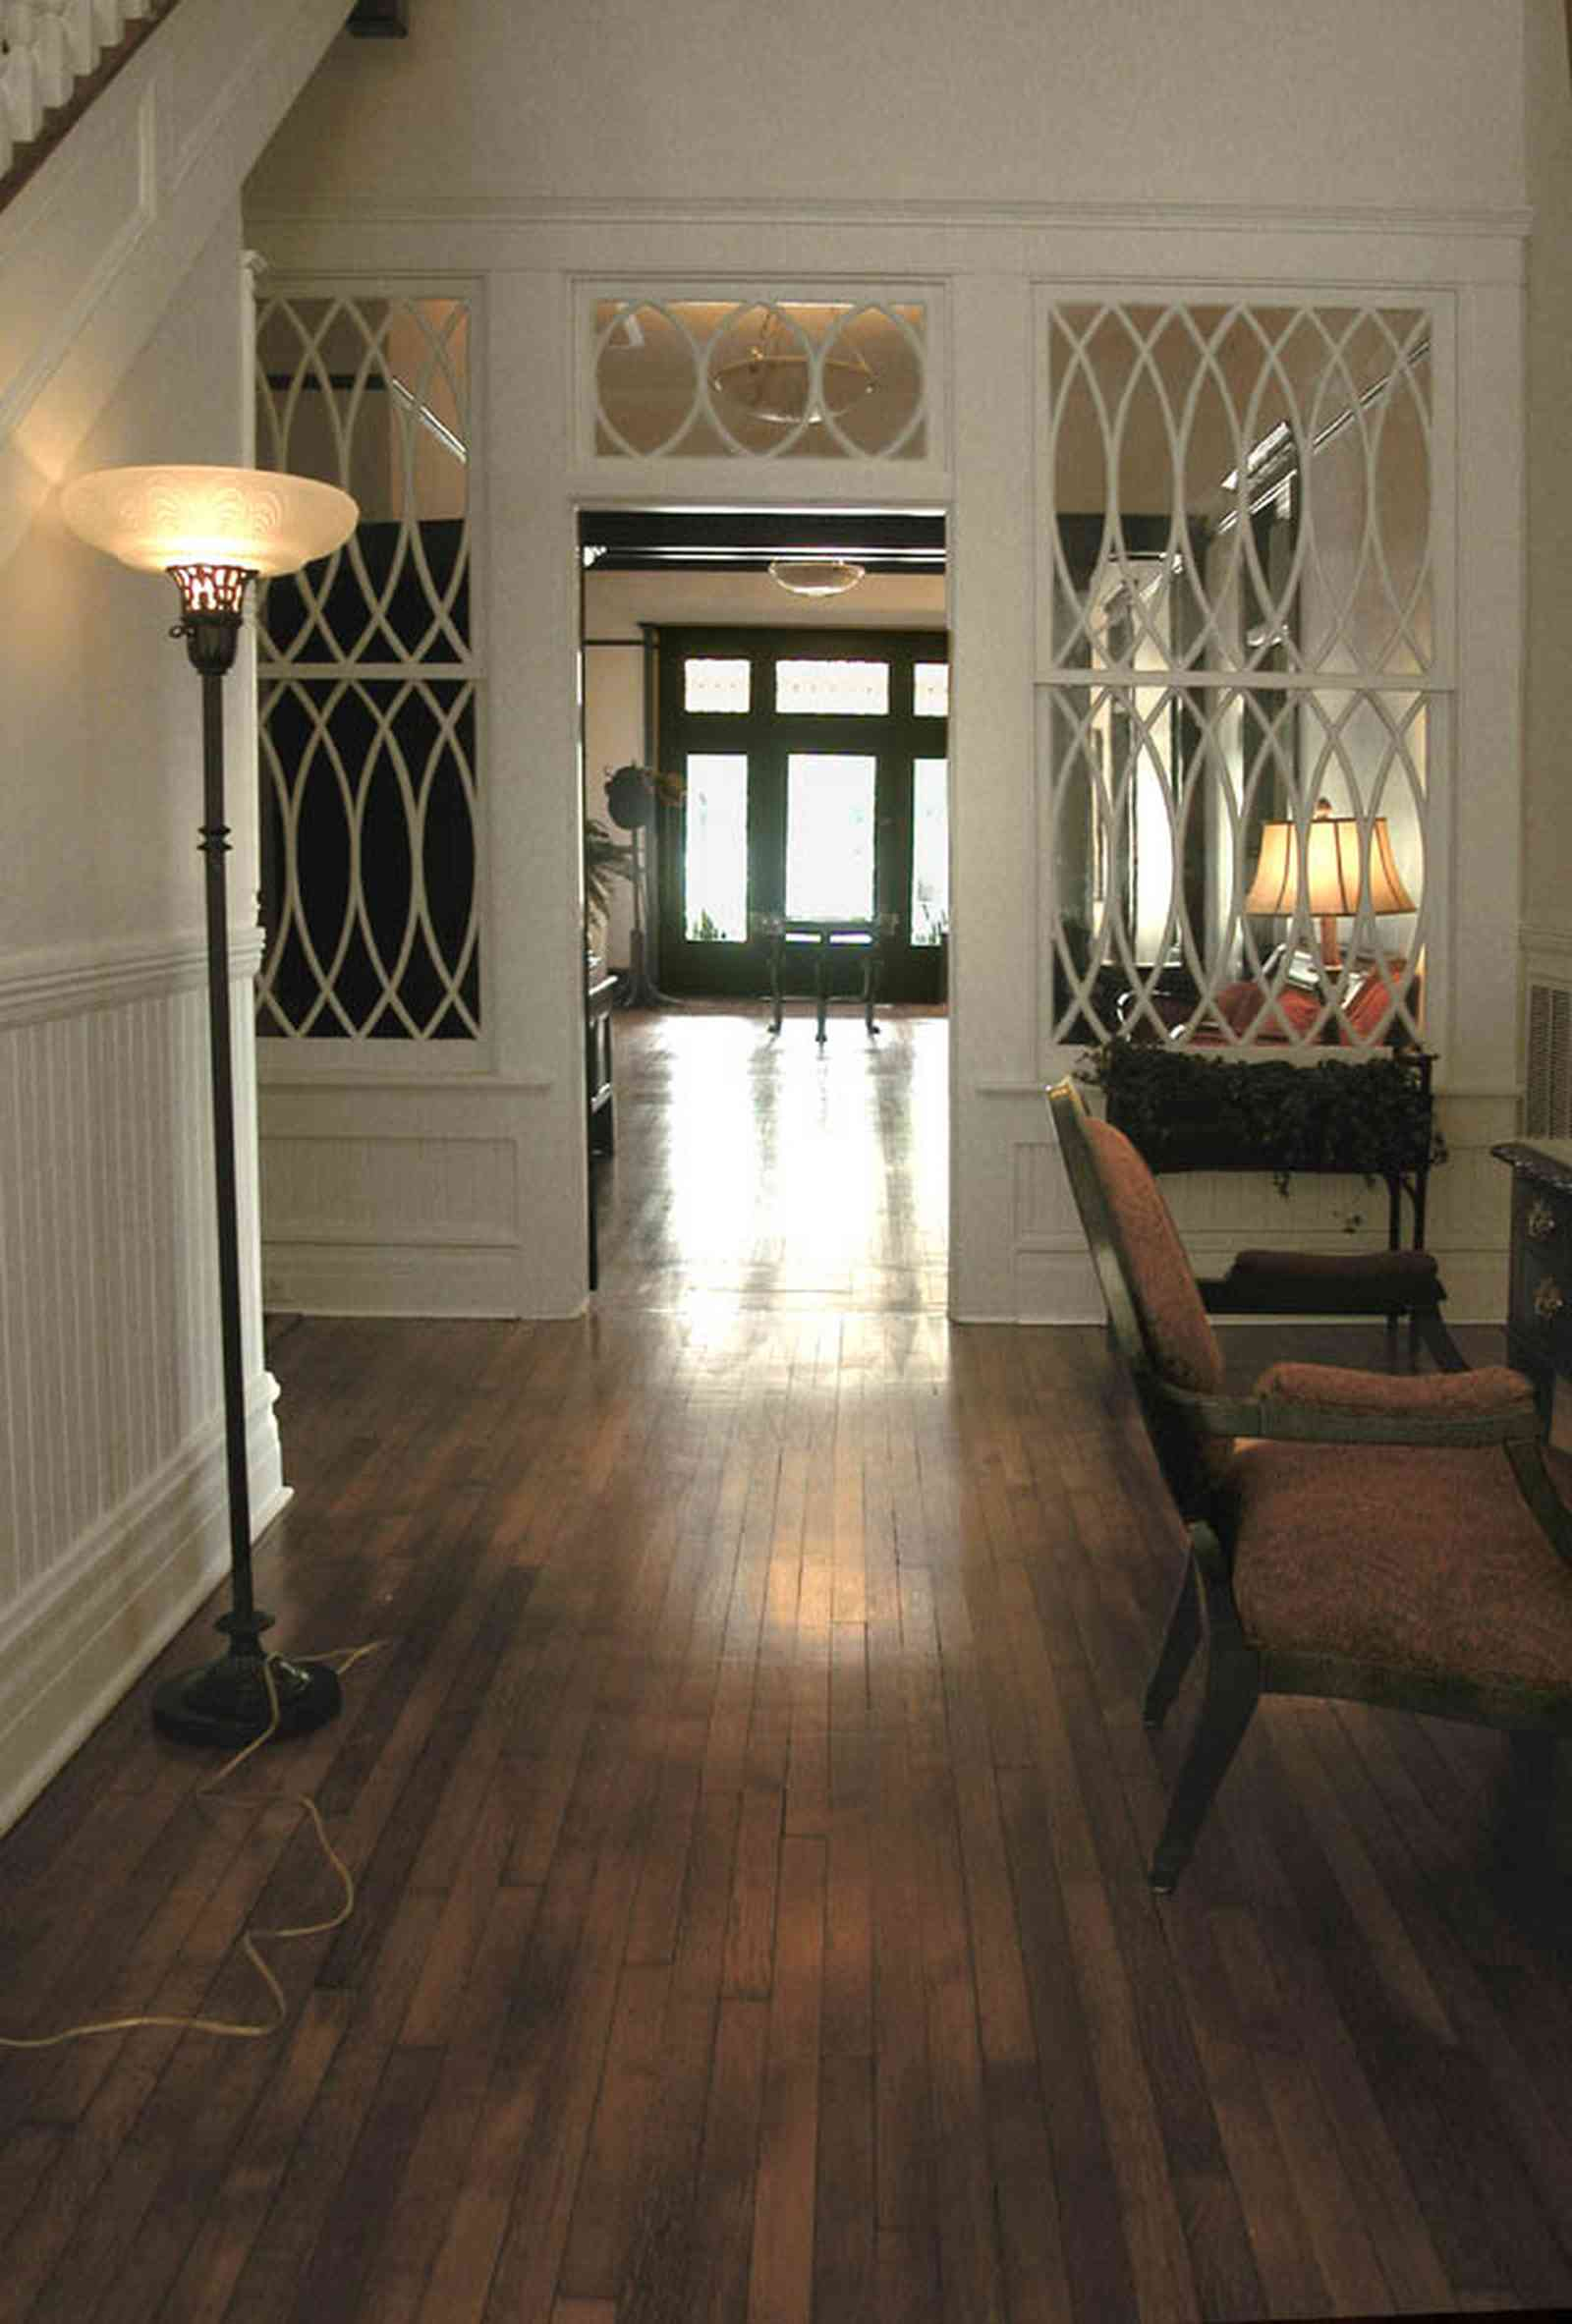 North-Hill:-116-DeSoto-St_02f.jpg:  central hall, heartpine floors, transom, red brocade chair, desk, floor lamp, staircase